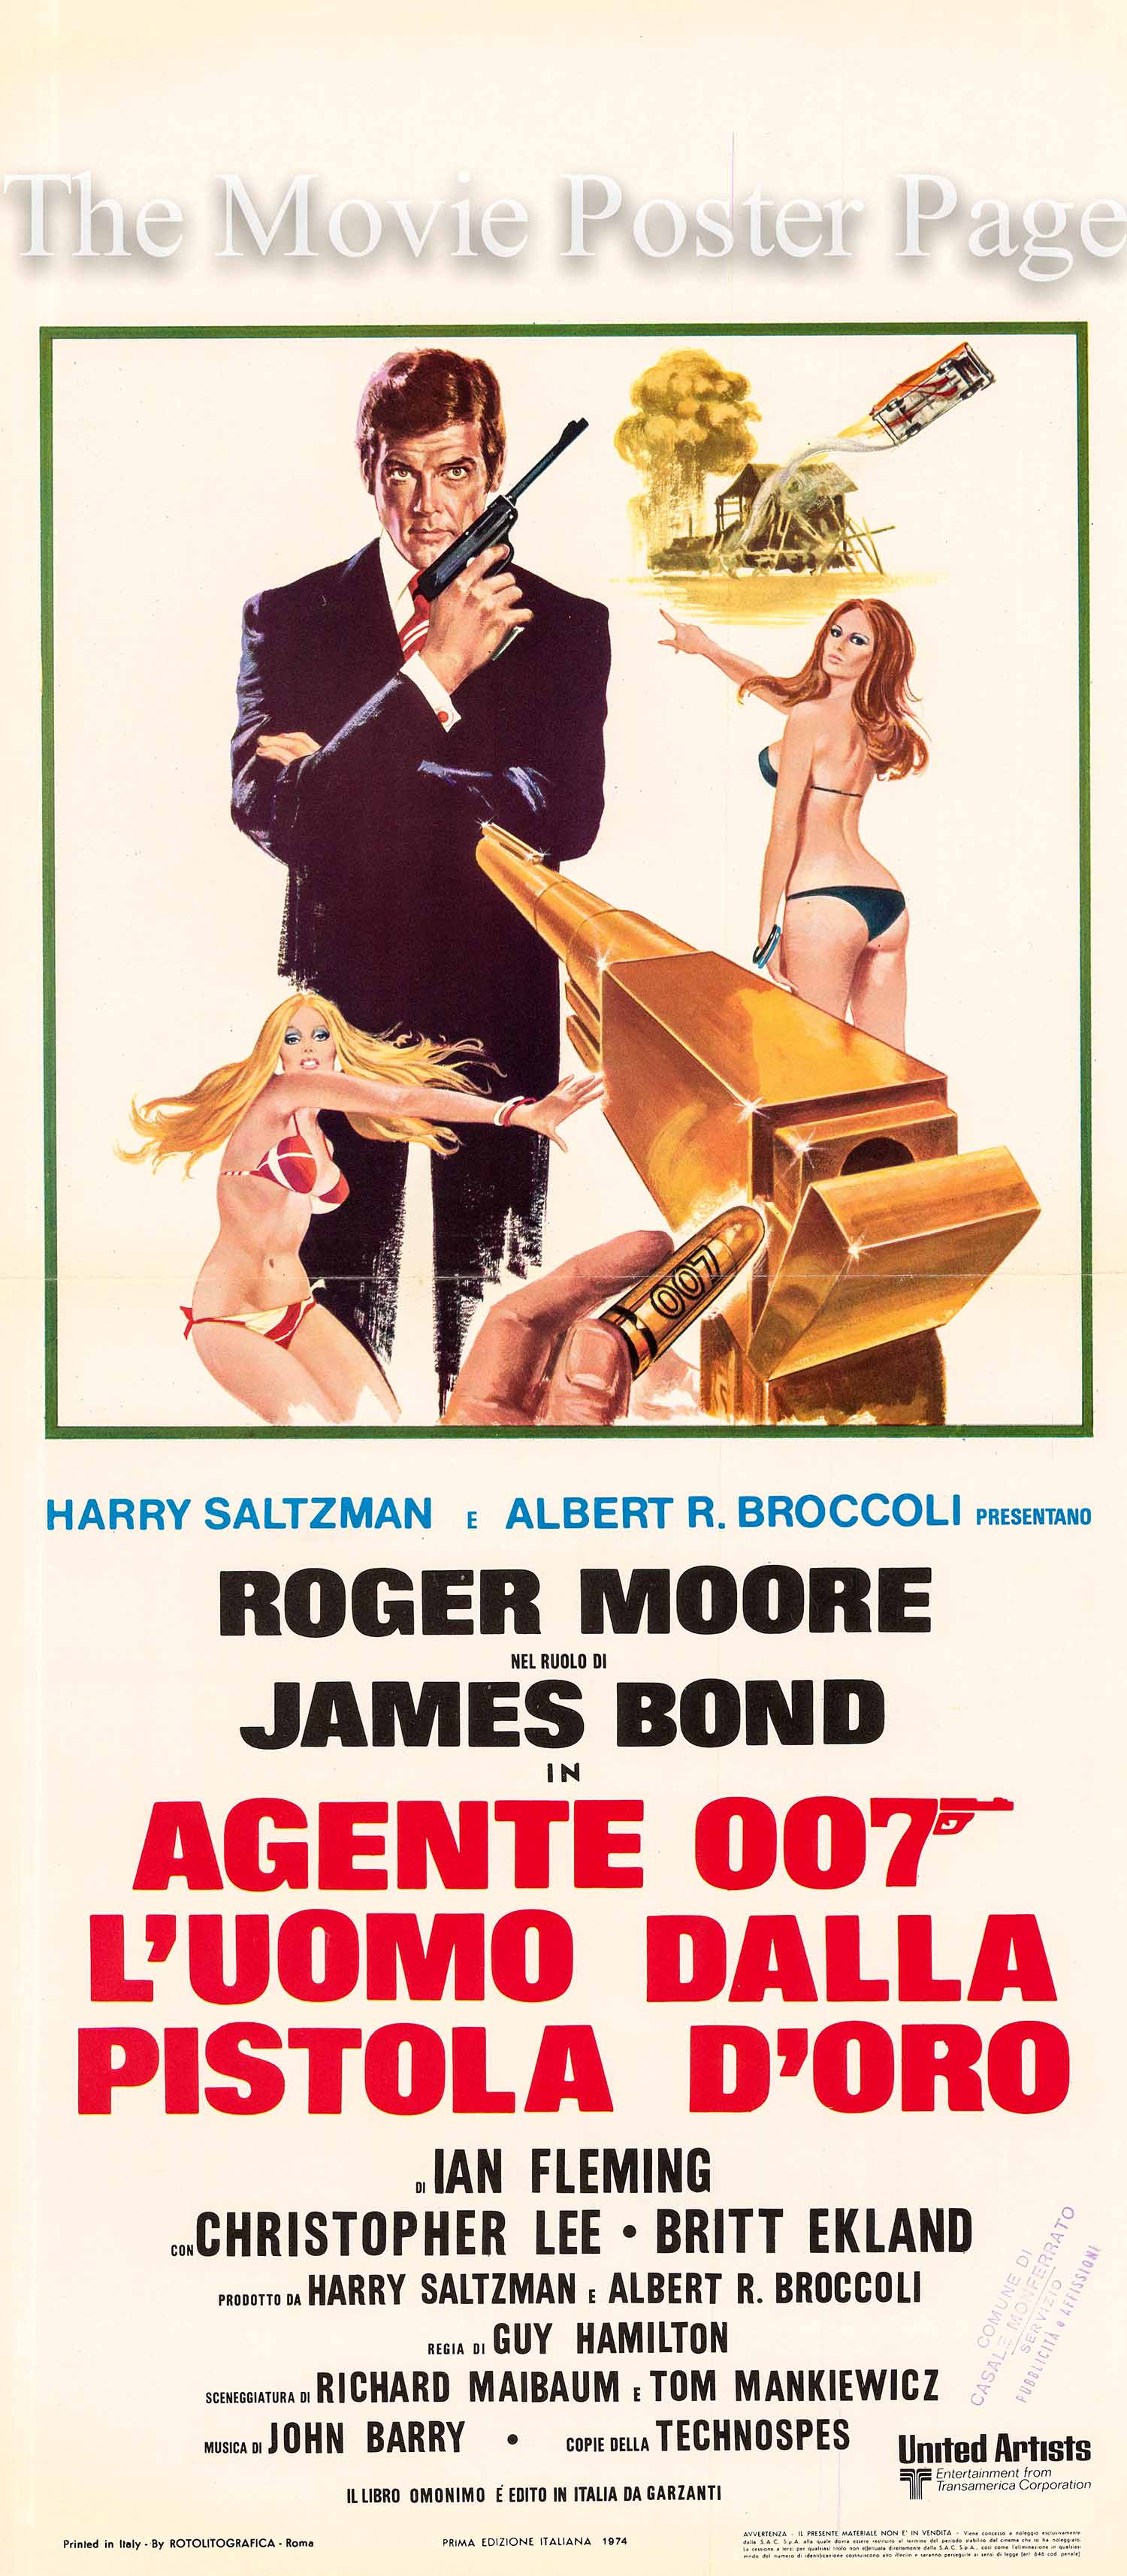 This is an Italian locandina promotional poster after a design by Robert McGinnis made to promote the 1974 Guy Hamilton film The Man with the Golden Gun, starring Roger Moore as James Bond.